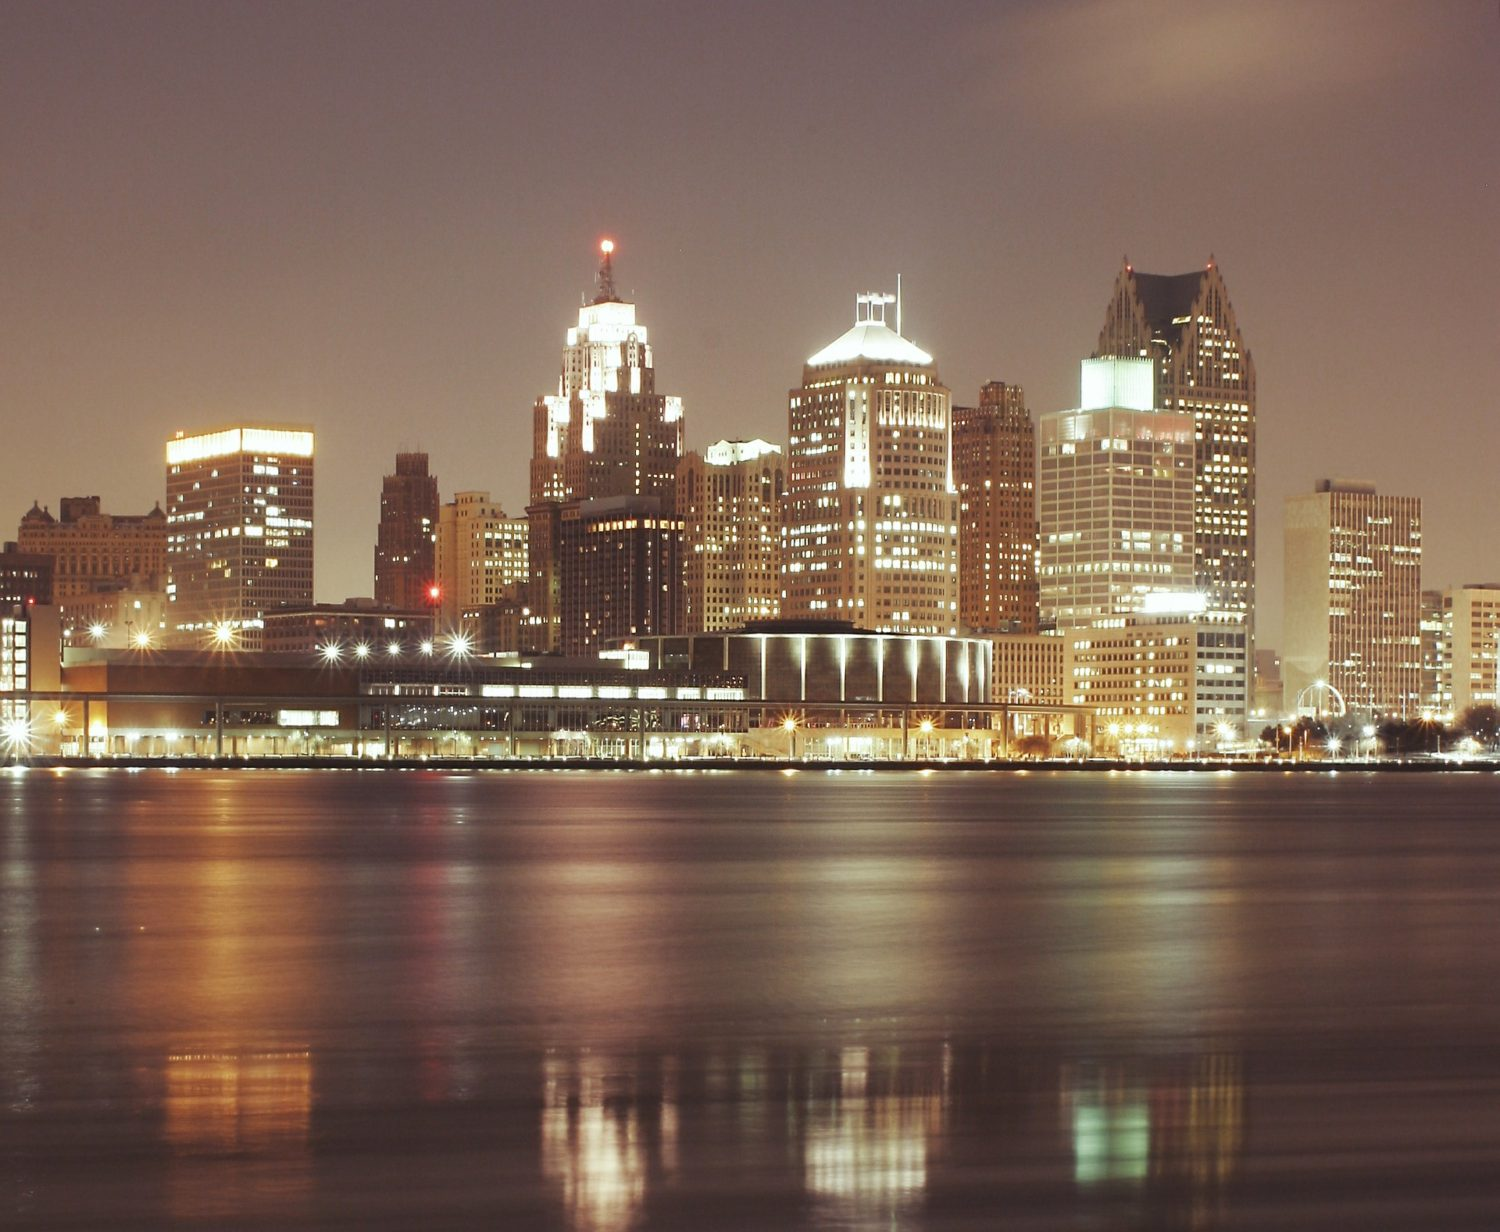 Detroit, Michigan skyline at night